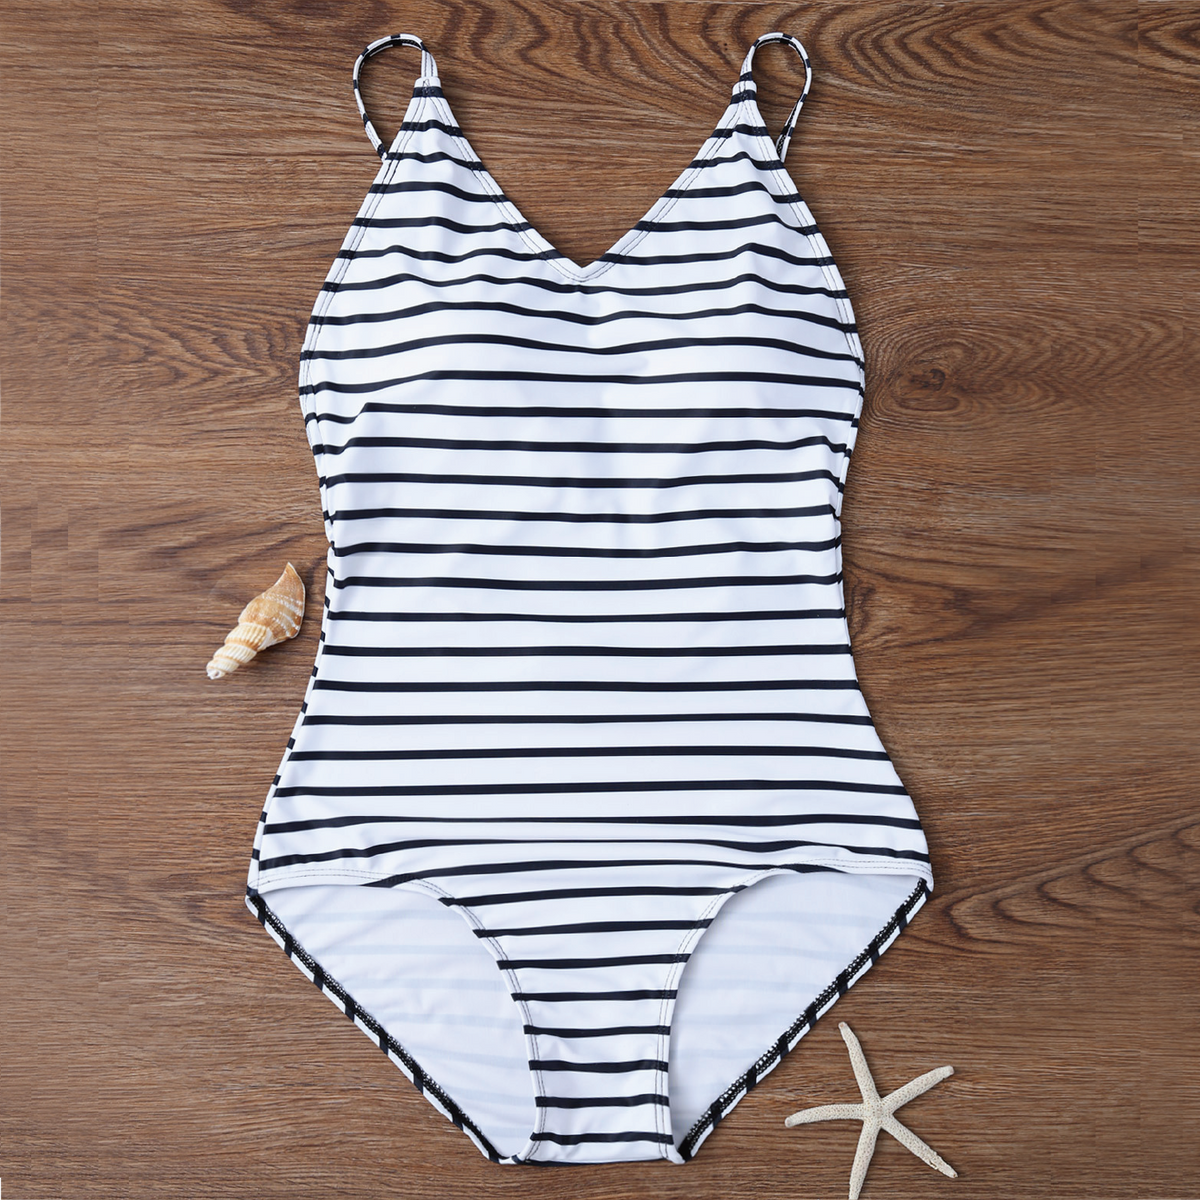 211543188ba Modest Black White Striped Swimsuit | Shop The Must-haves for You ...